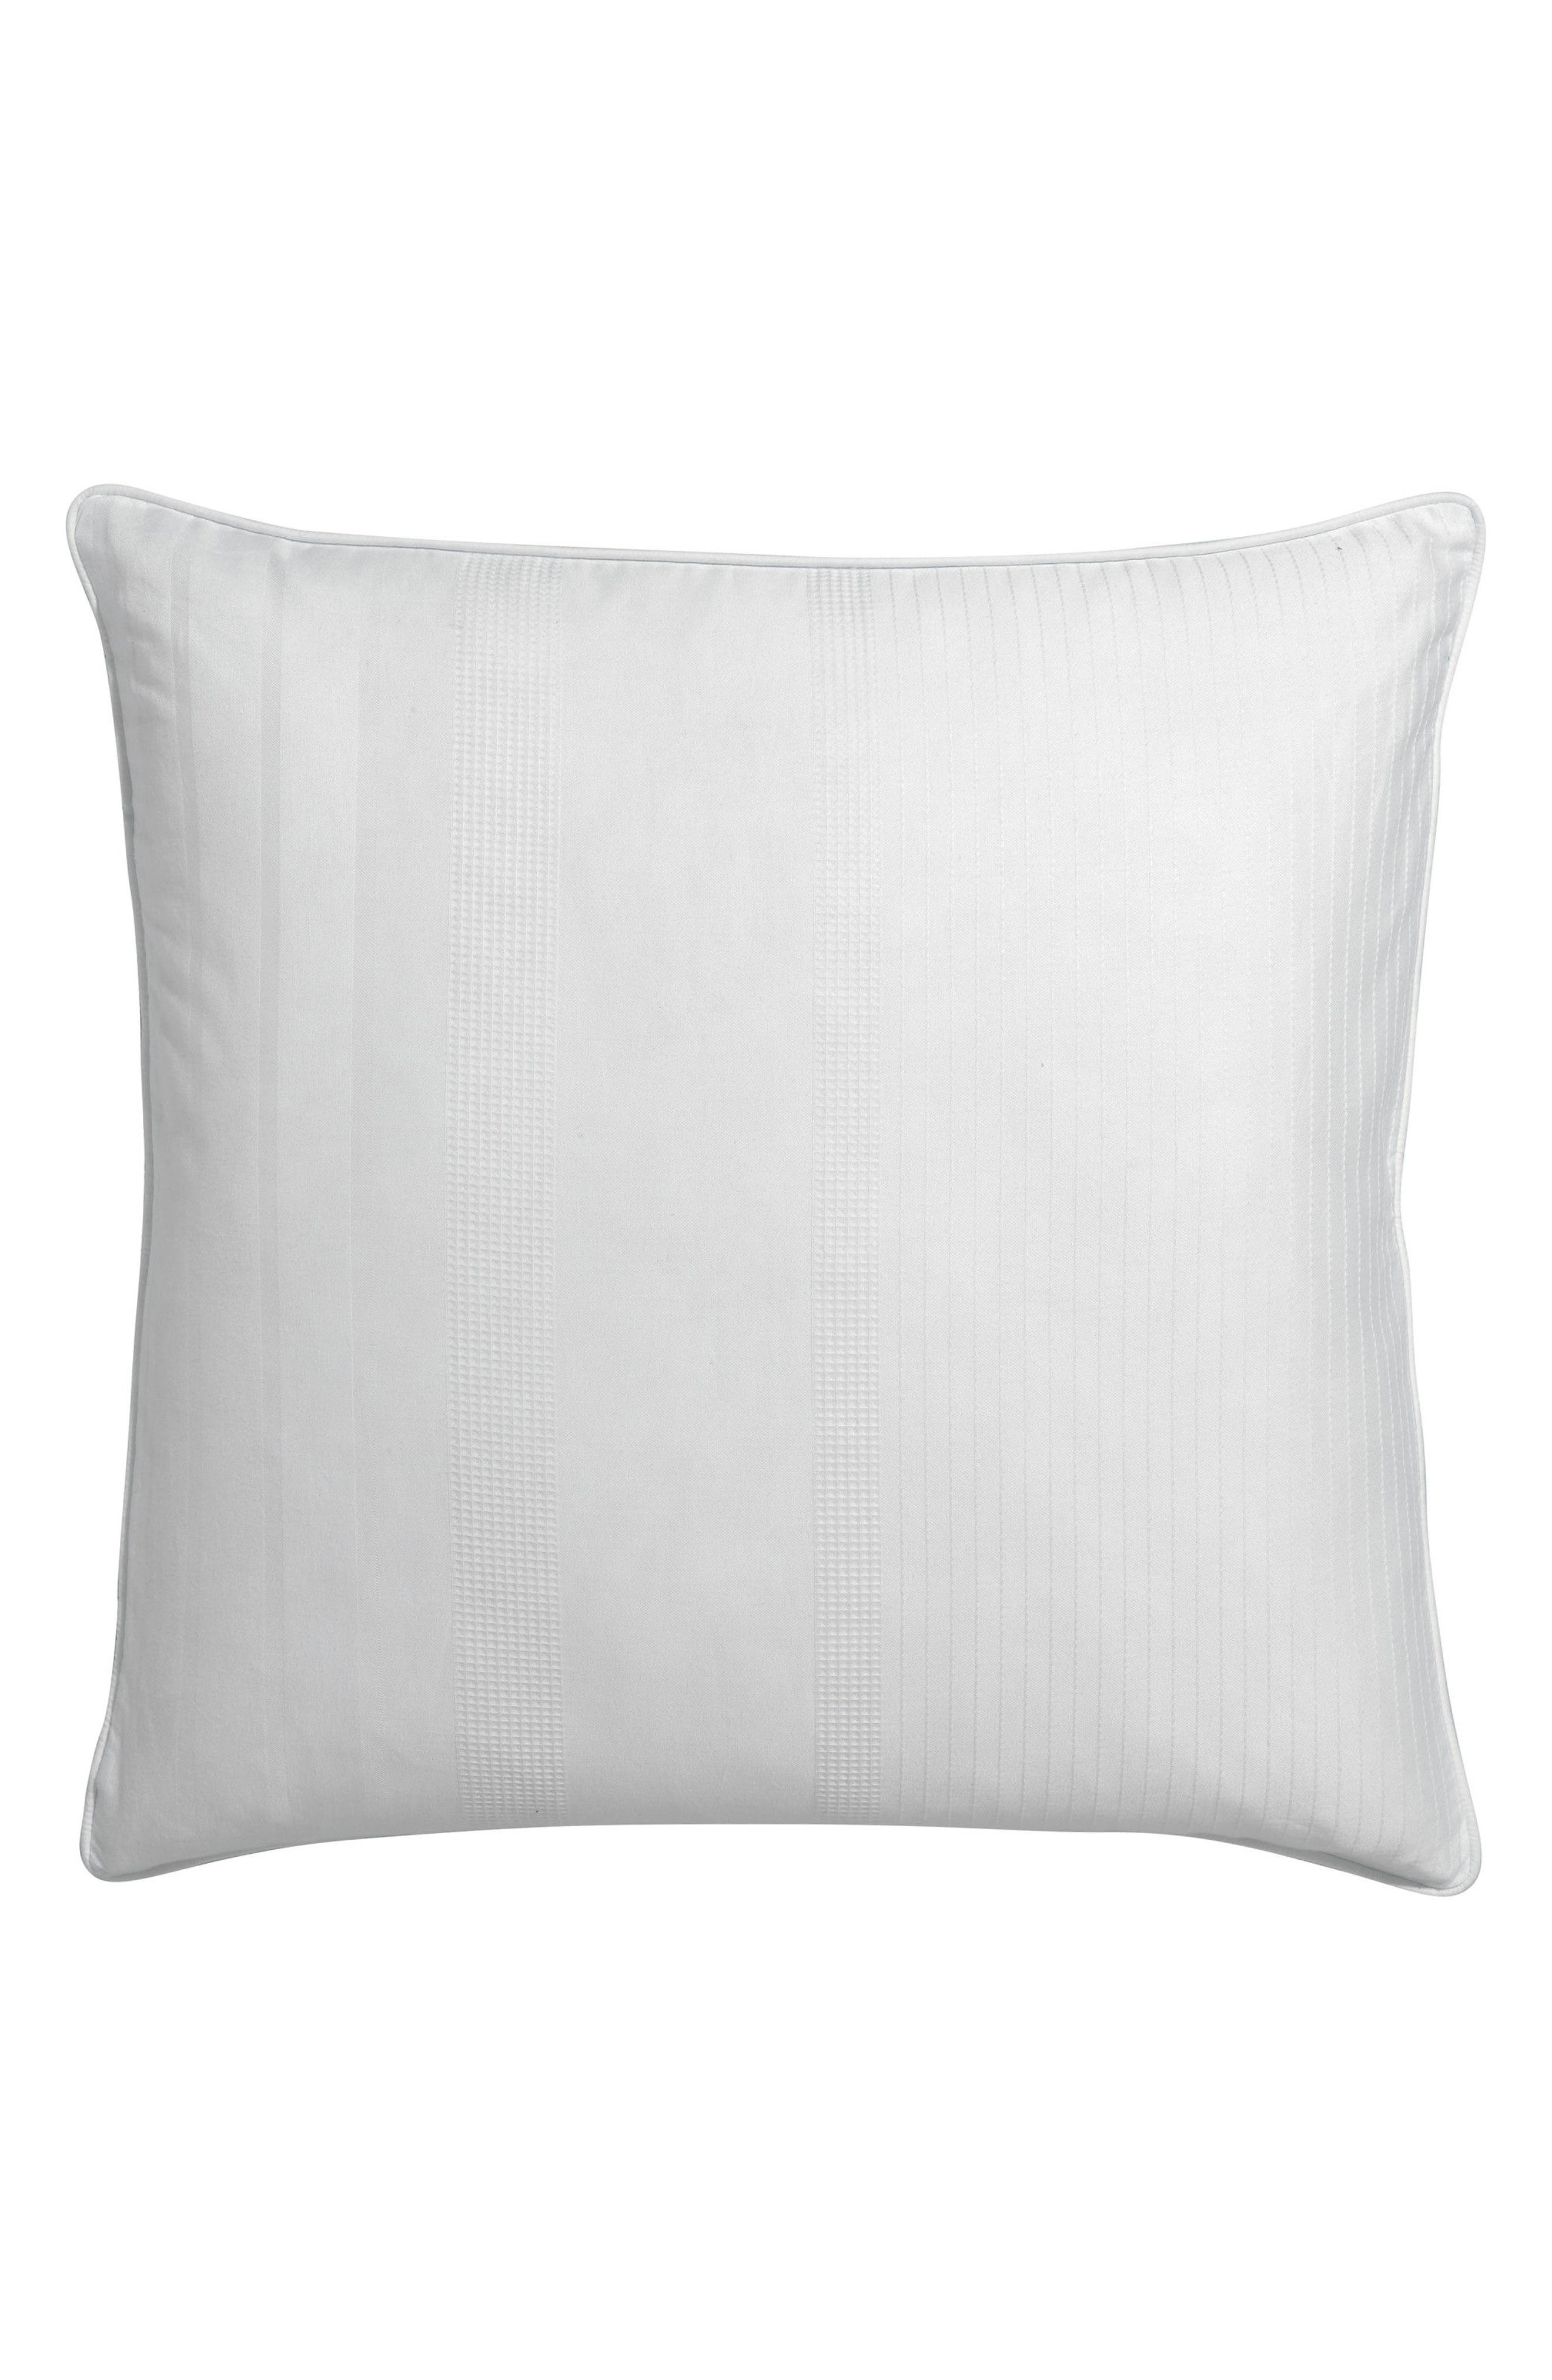 Sloane Square Organic Cotton Dobby Accent Pillow,                         Main,                         color, 100